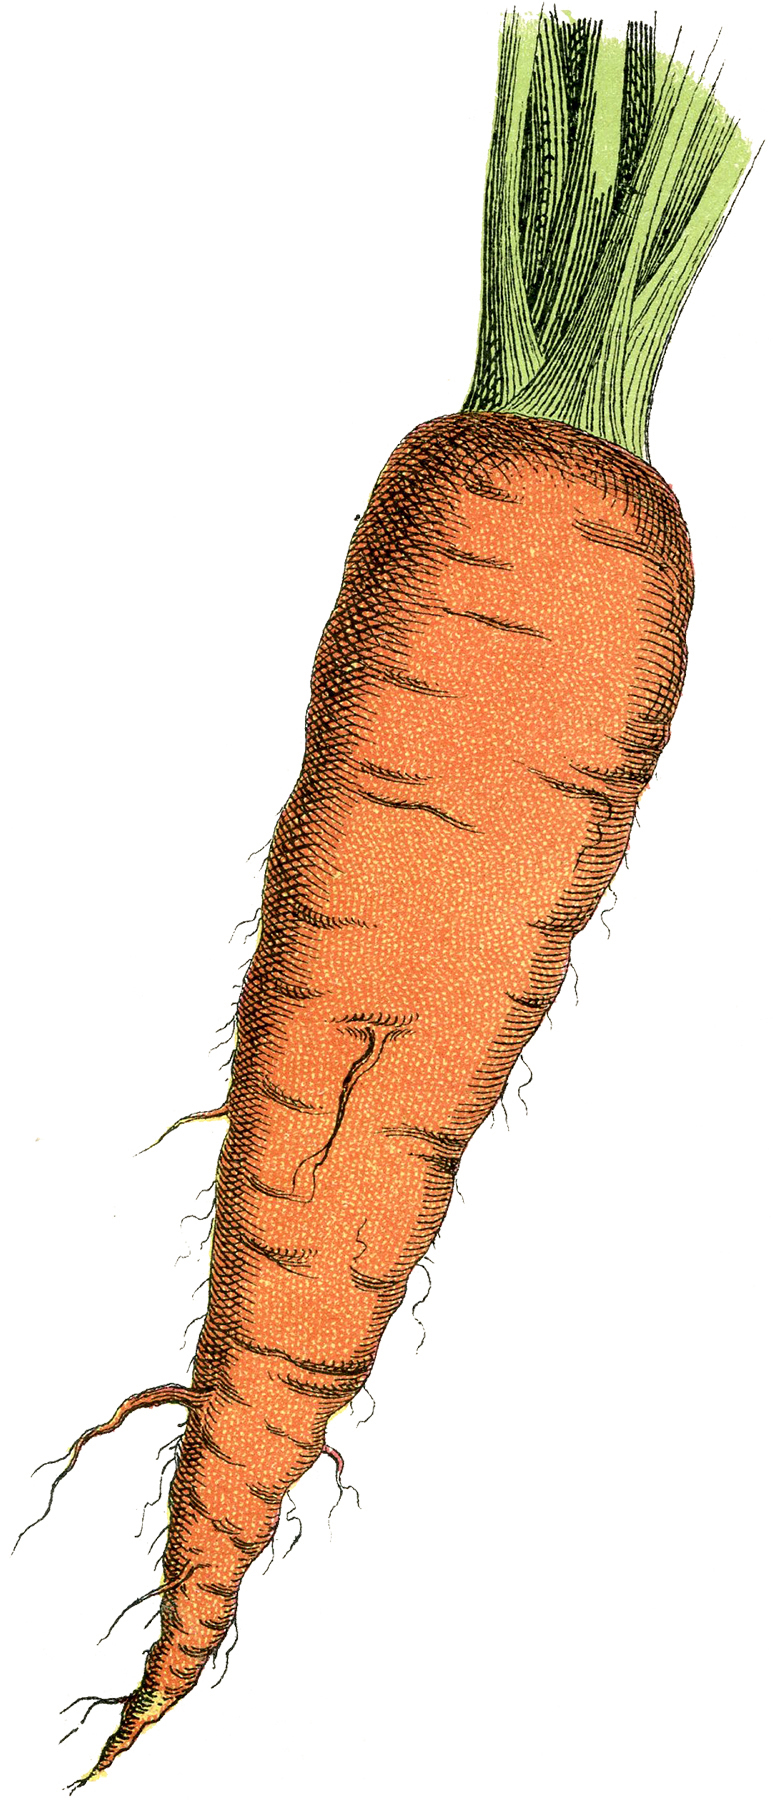 Free Carrot Image The Graphics Fairy